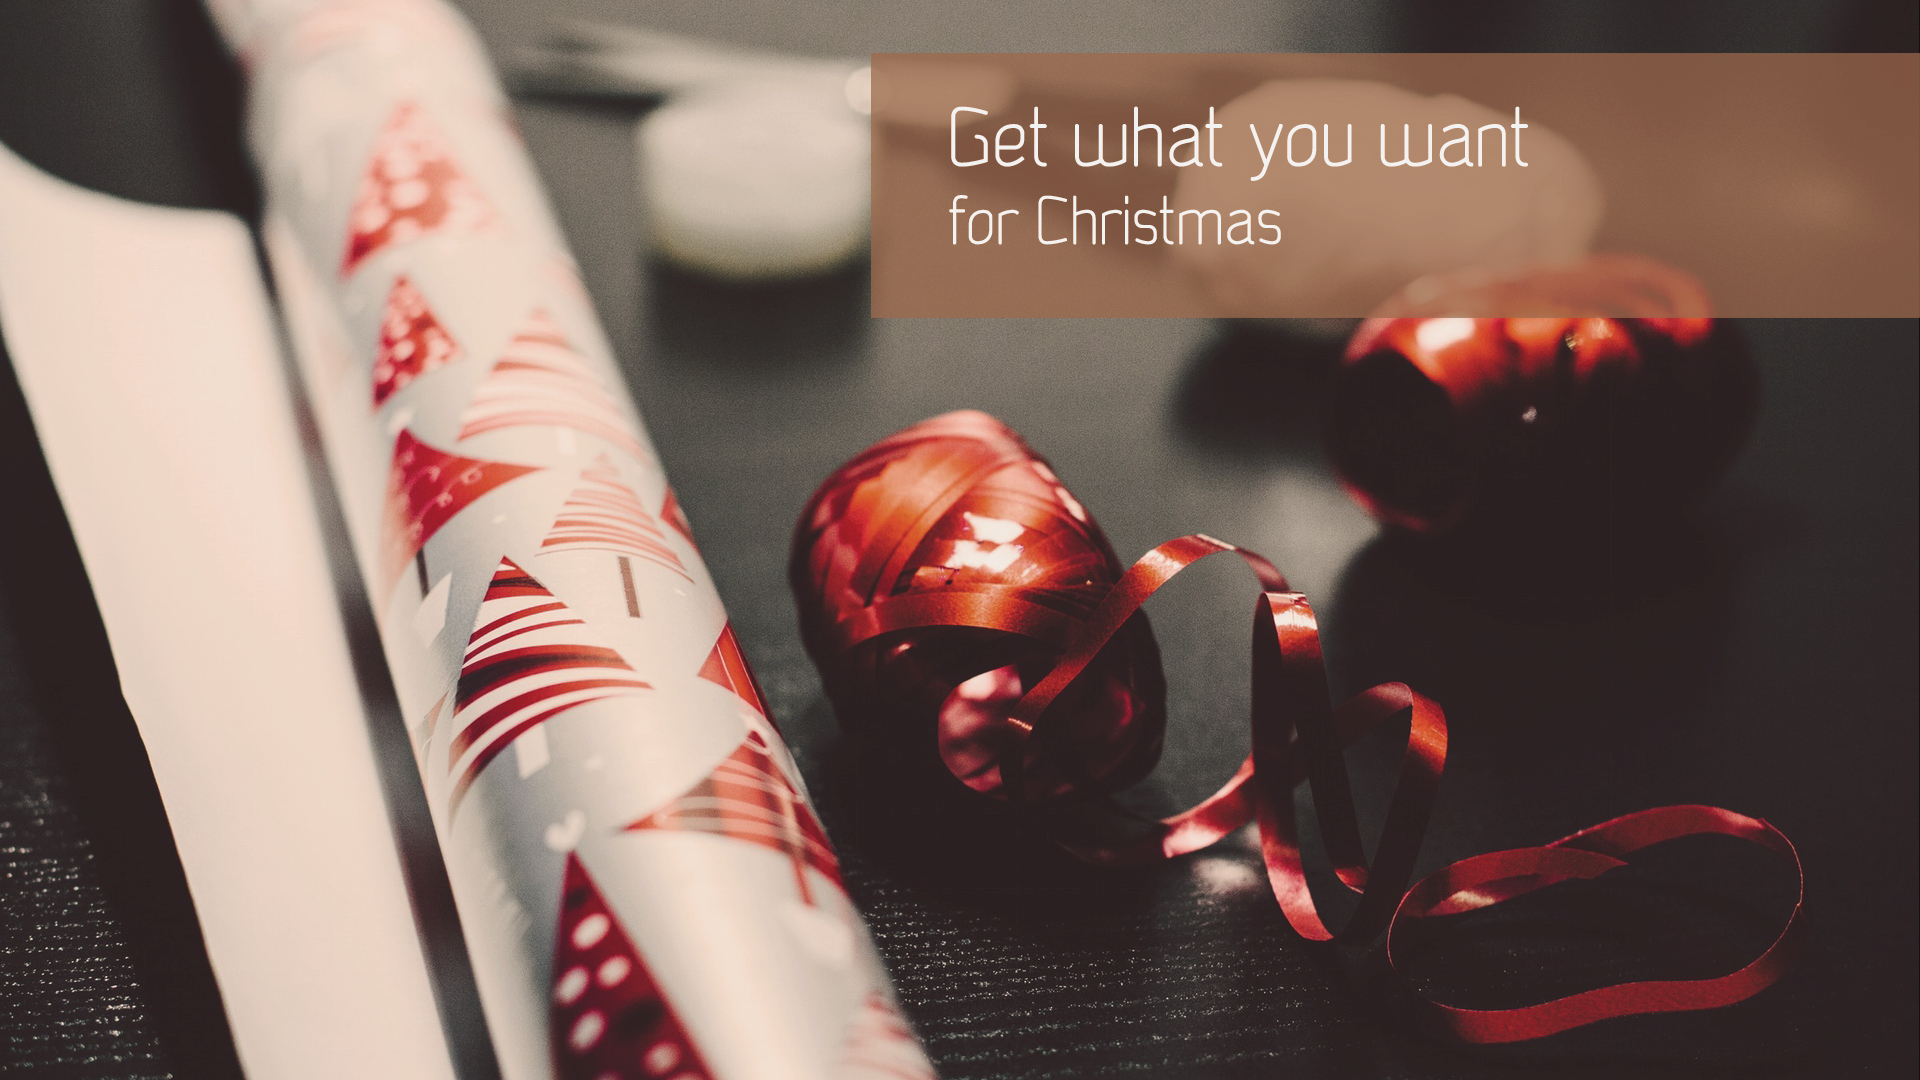 How to get exactly what you want for Christmas?